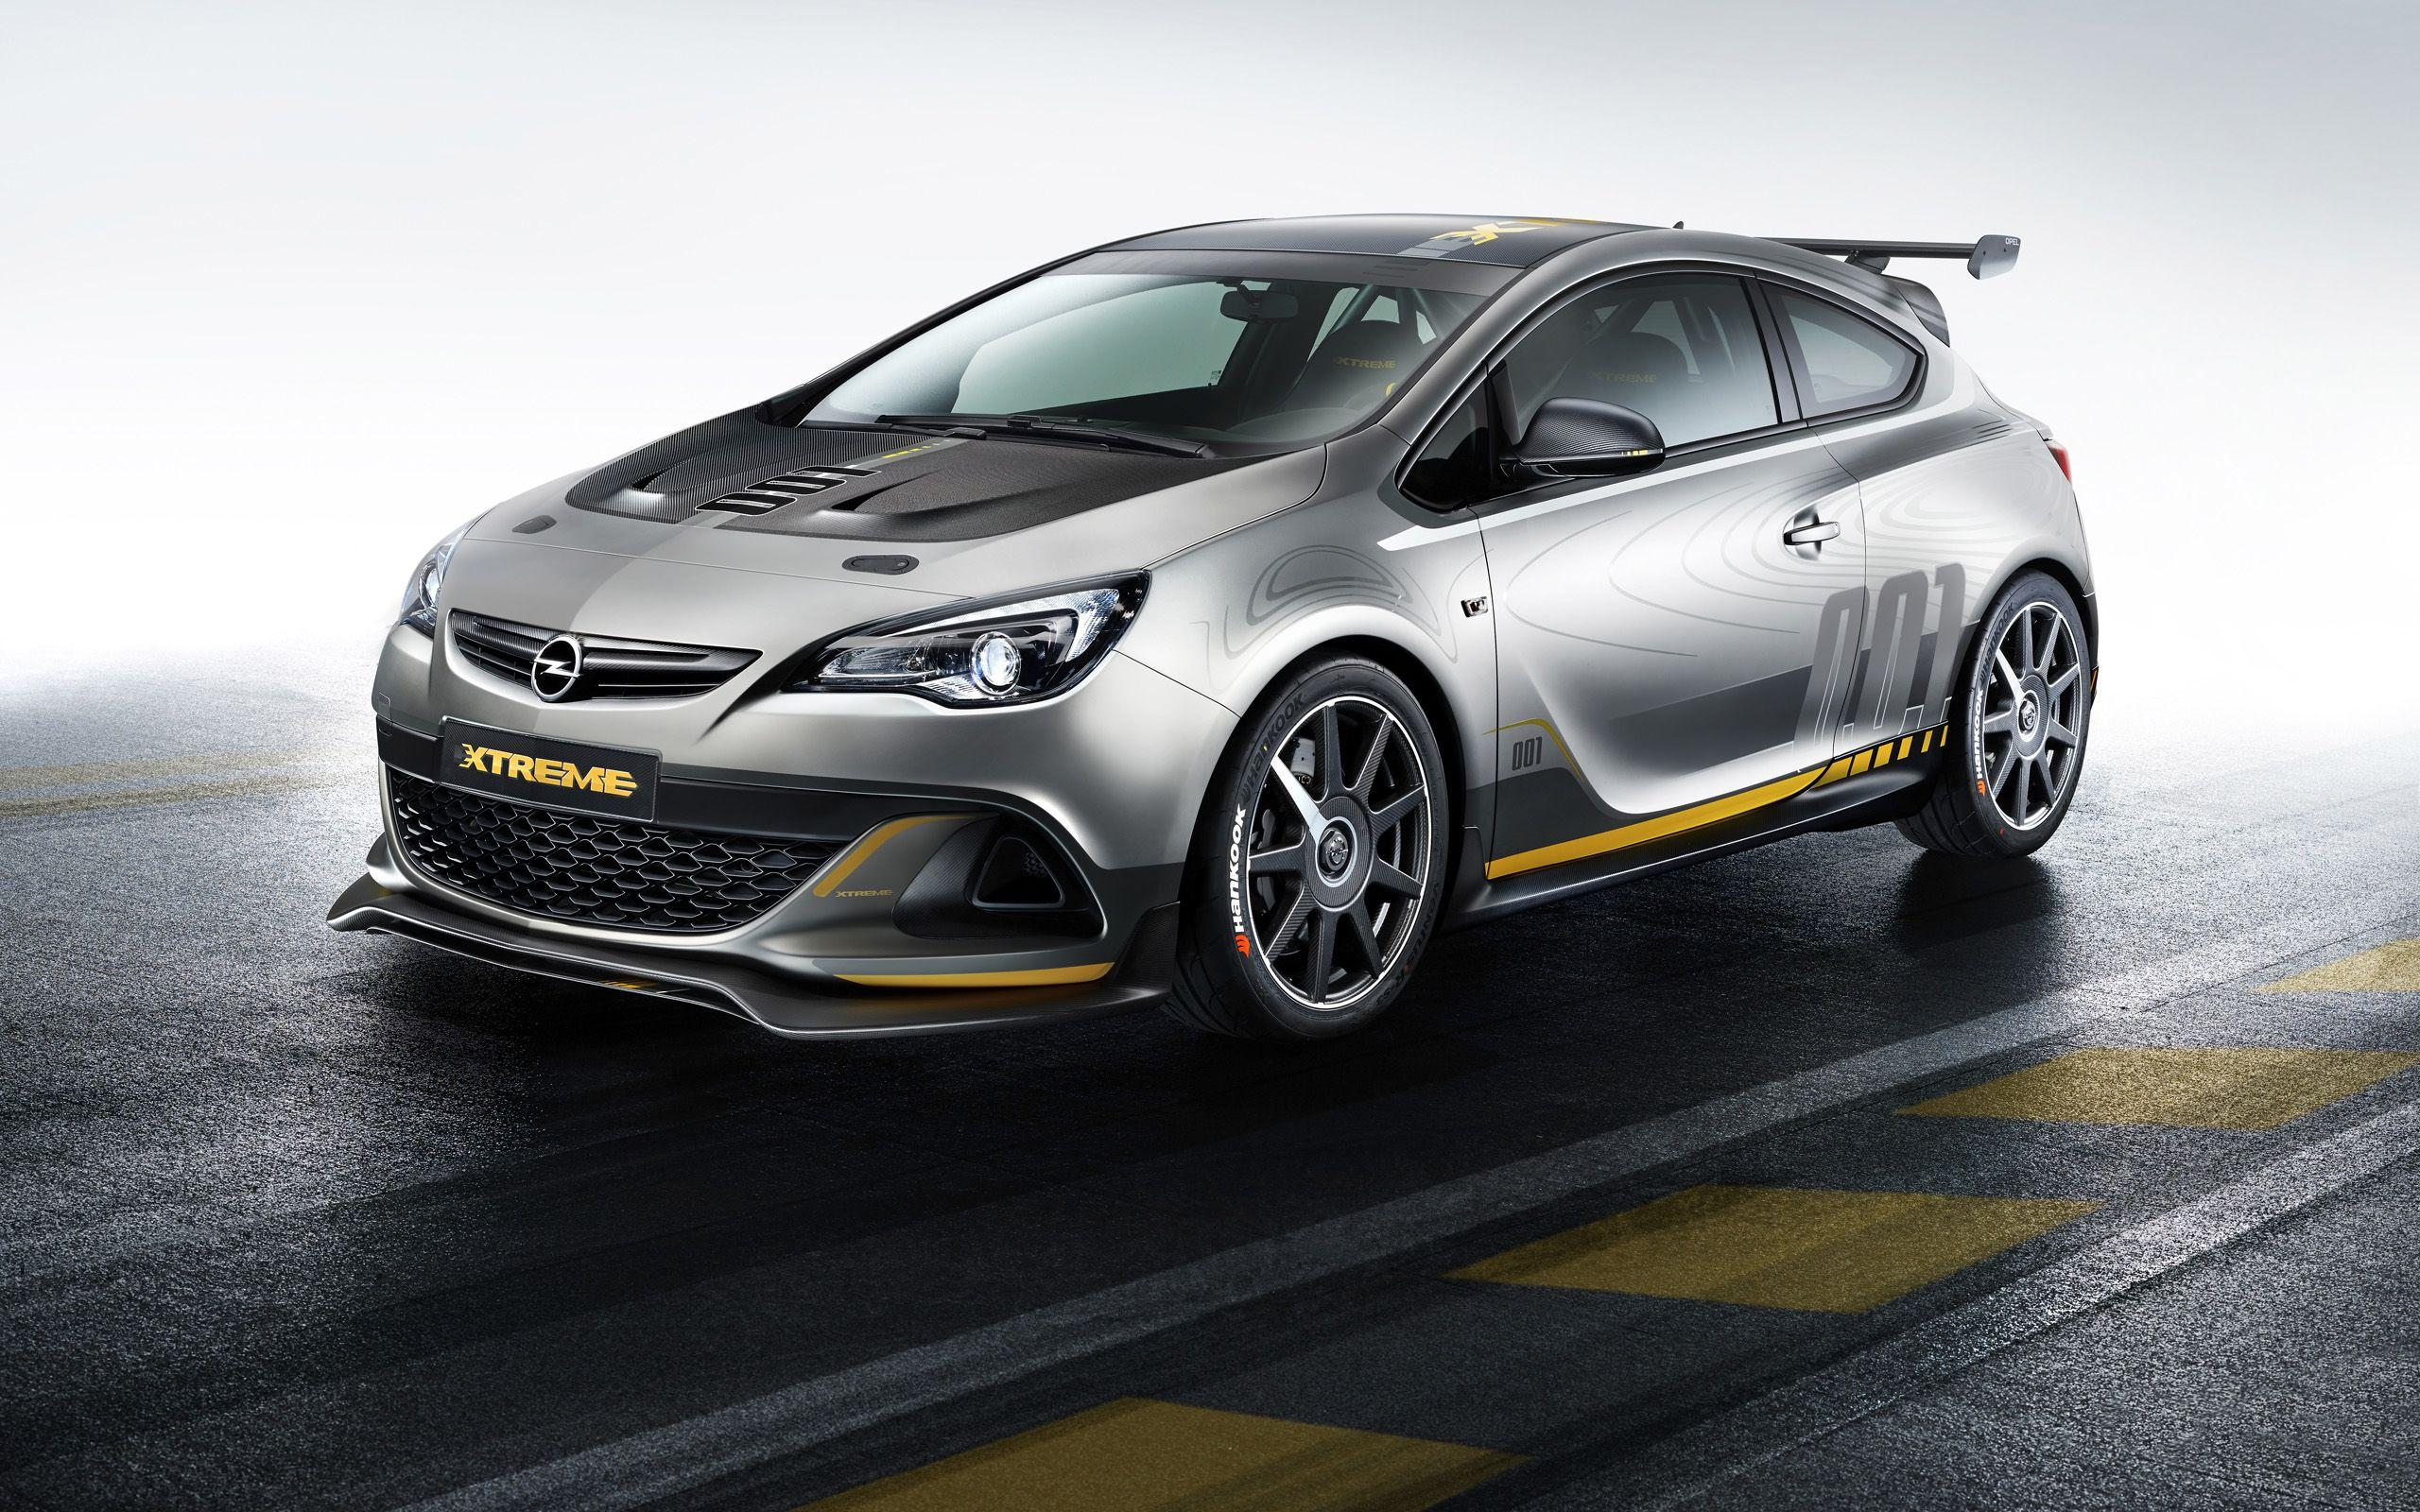 2014 Opel Astra OPC Extreme Wallpapers